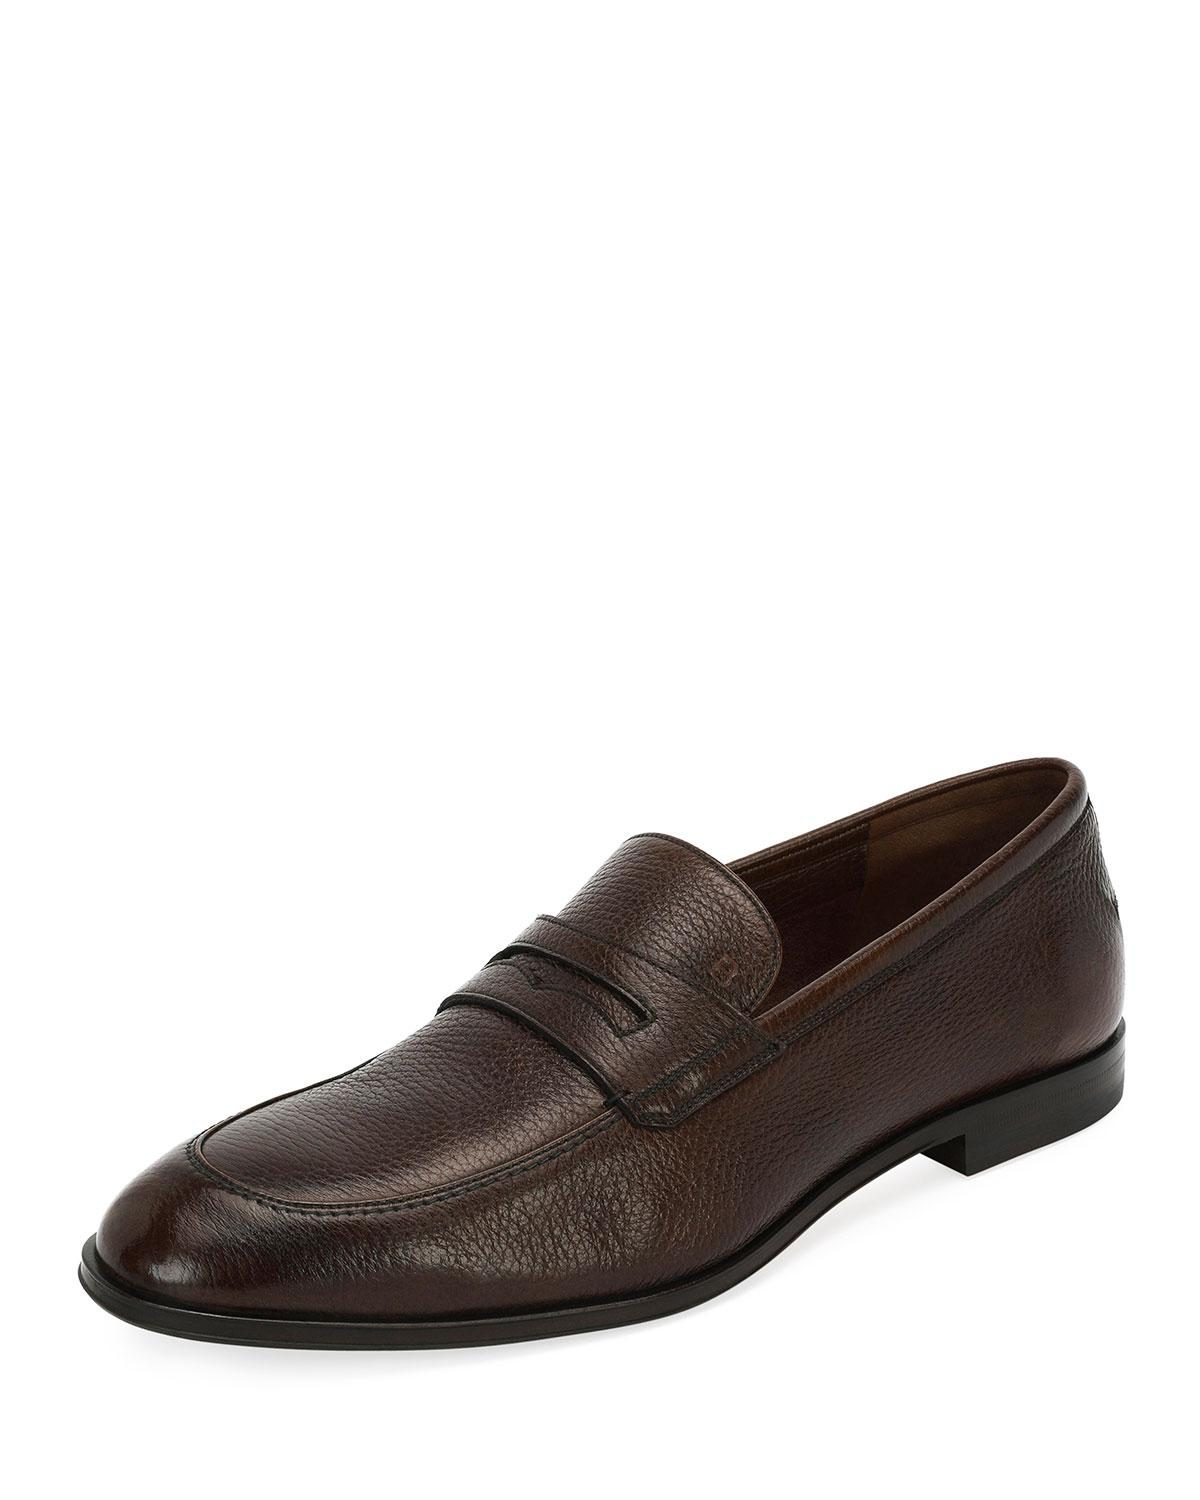 abc513f3d21 Bally Men s Relon Leather Penny Loafer Drivers In Brown